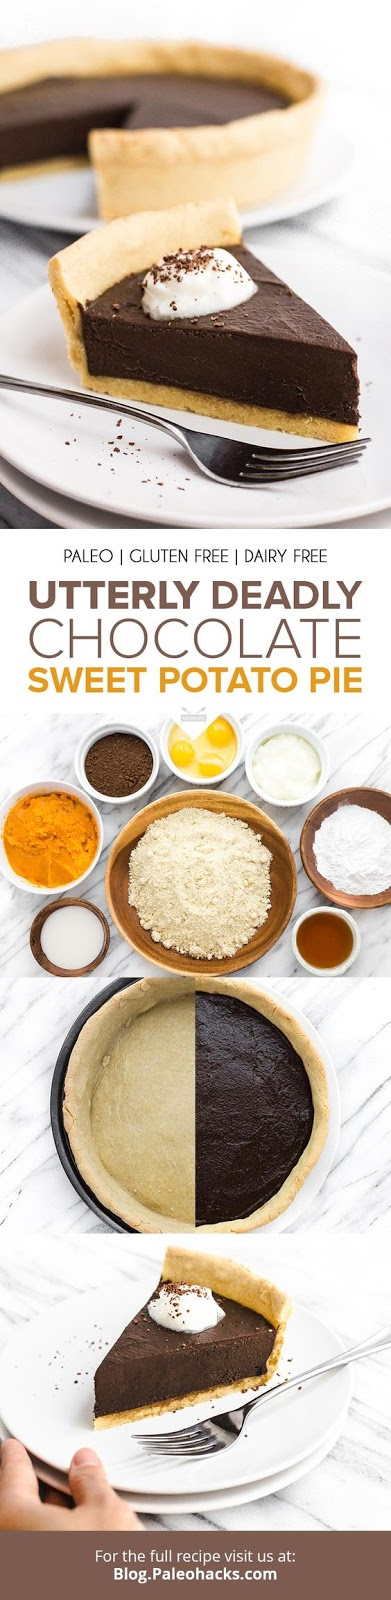 Keto Utterly Deadly Chocolate Sweet Potato Pie